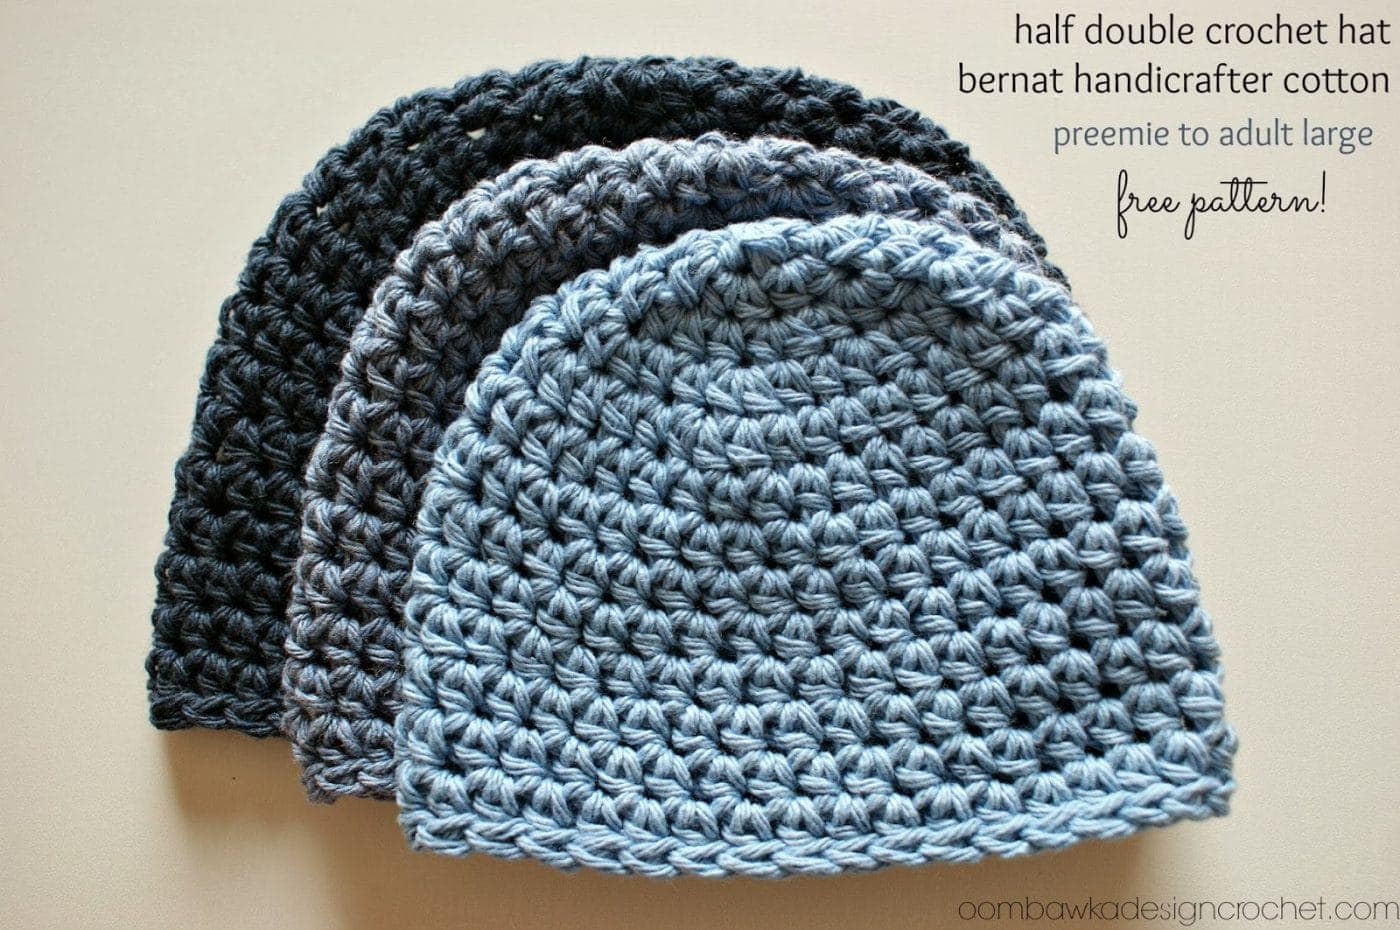 Free Patterns Crochet For Hats : Half Double Crochet Hat Pattern #2 Free Pattern Oombawka ...